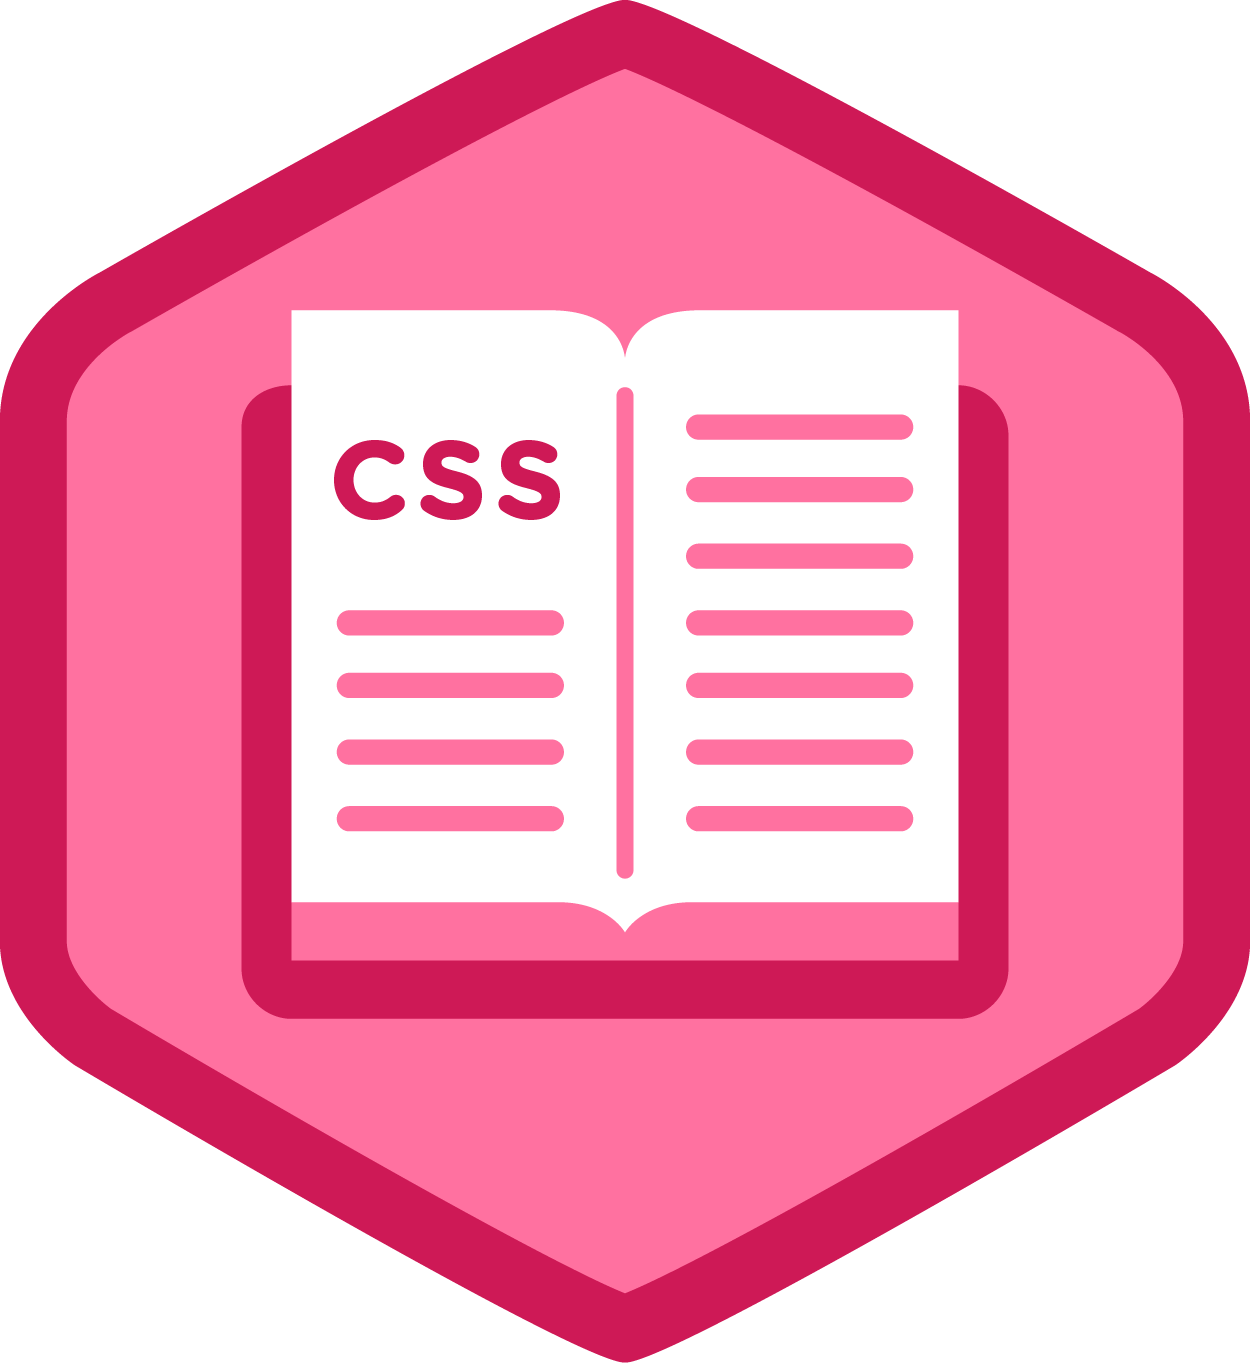 Css basics course What is style